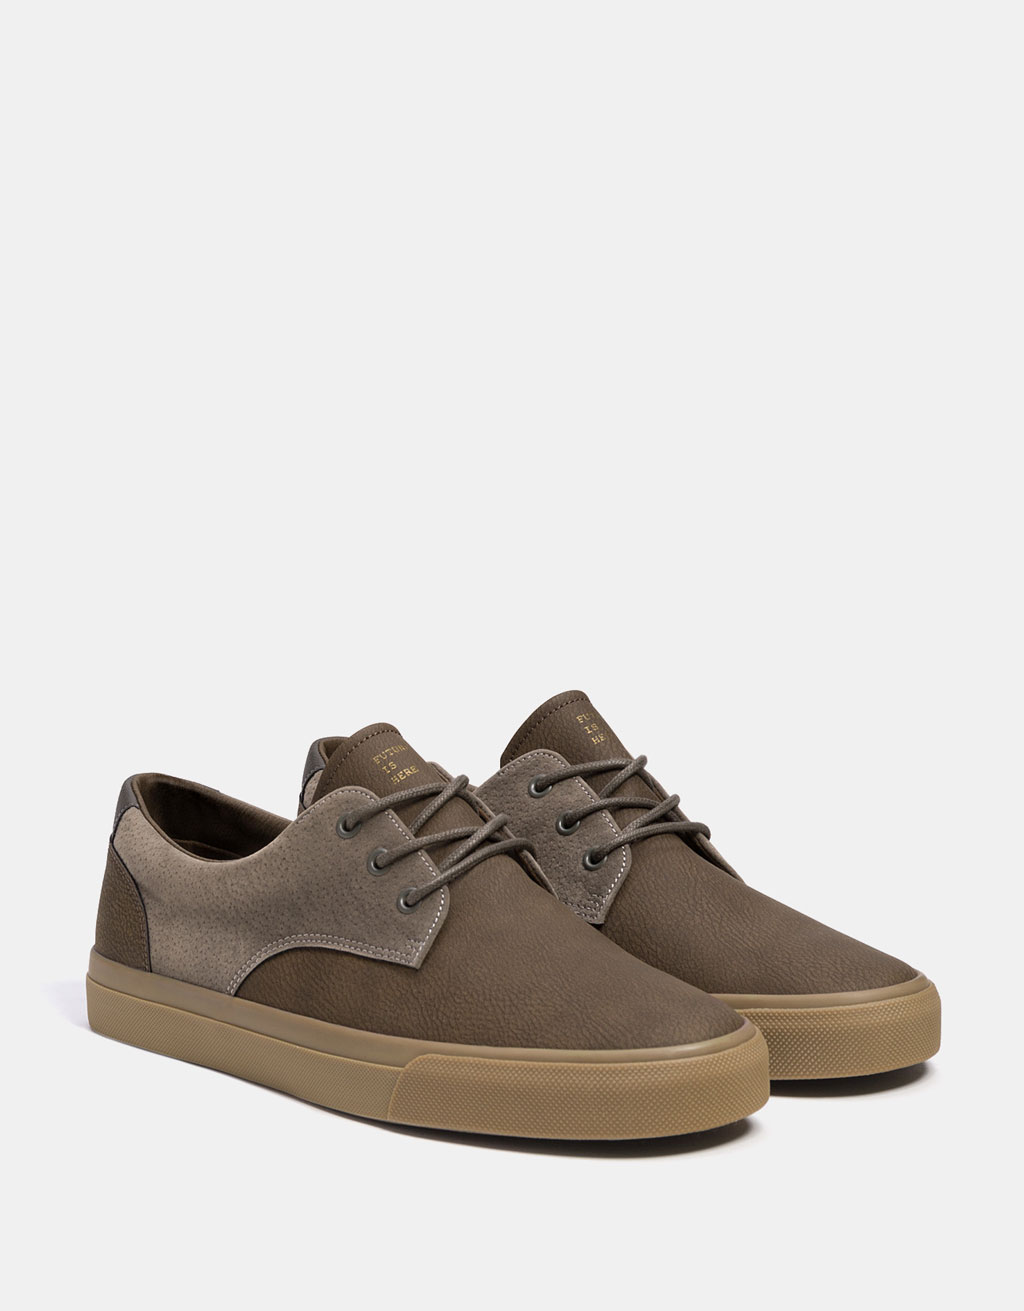 Men's combined sneakers with caramel-coloured soles